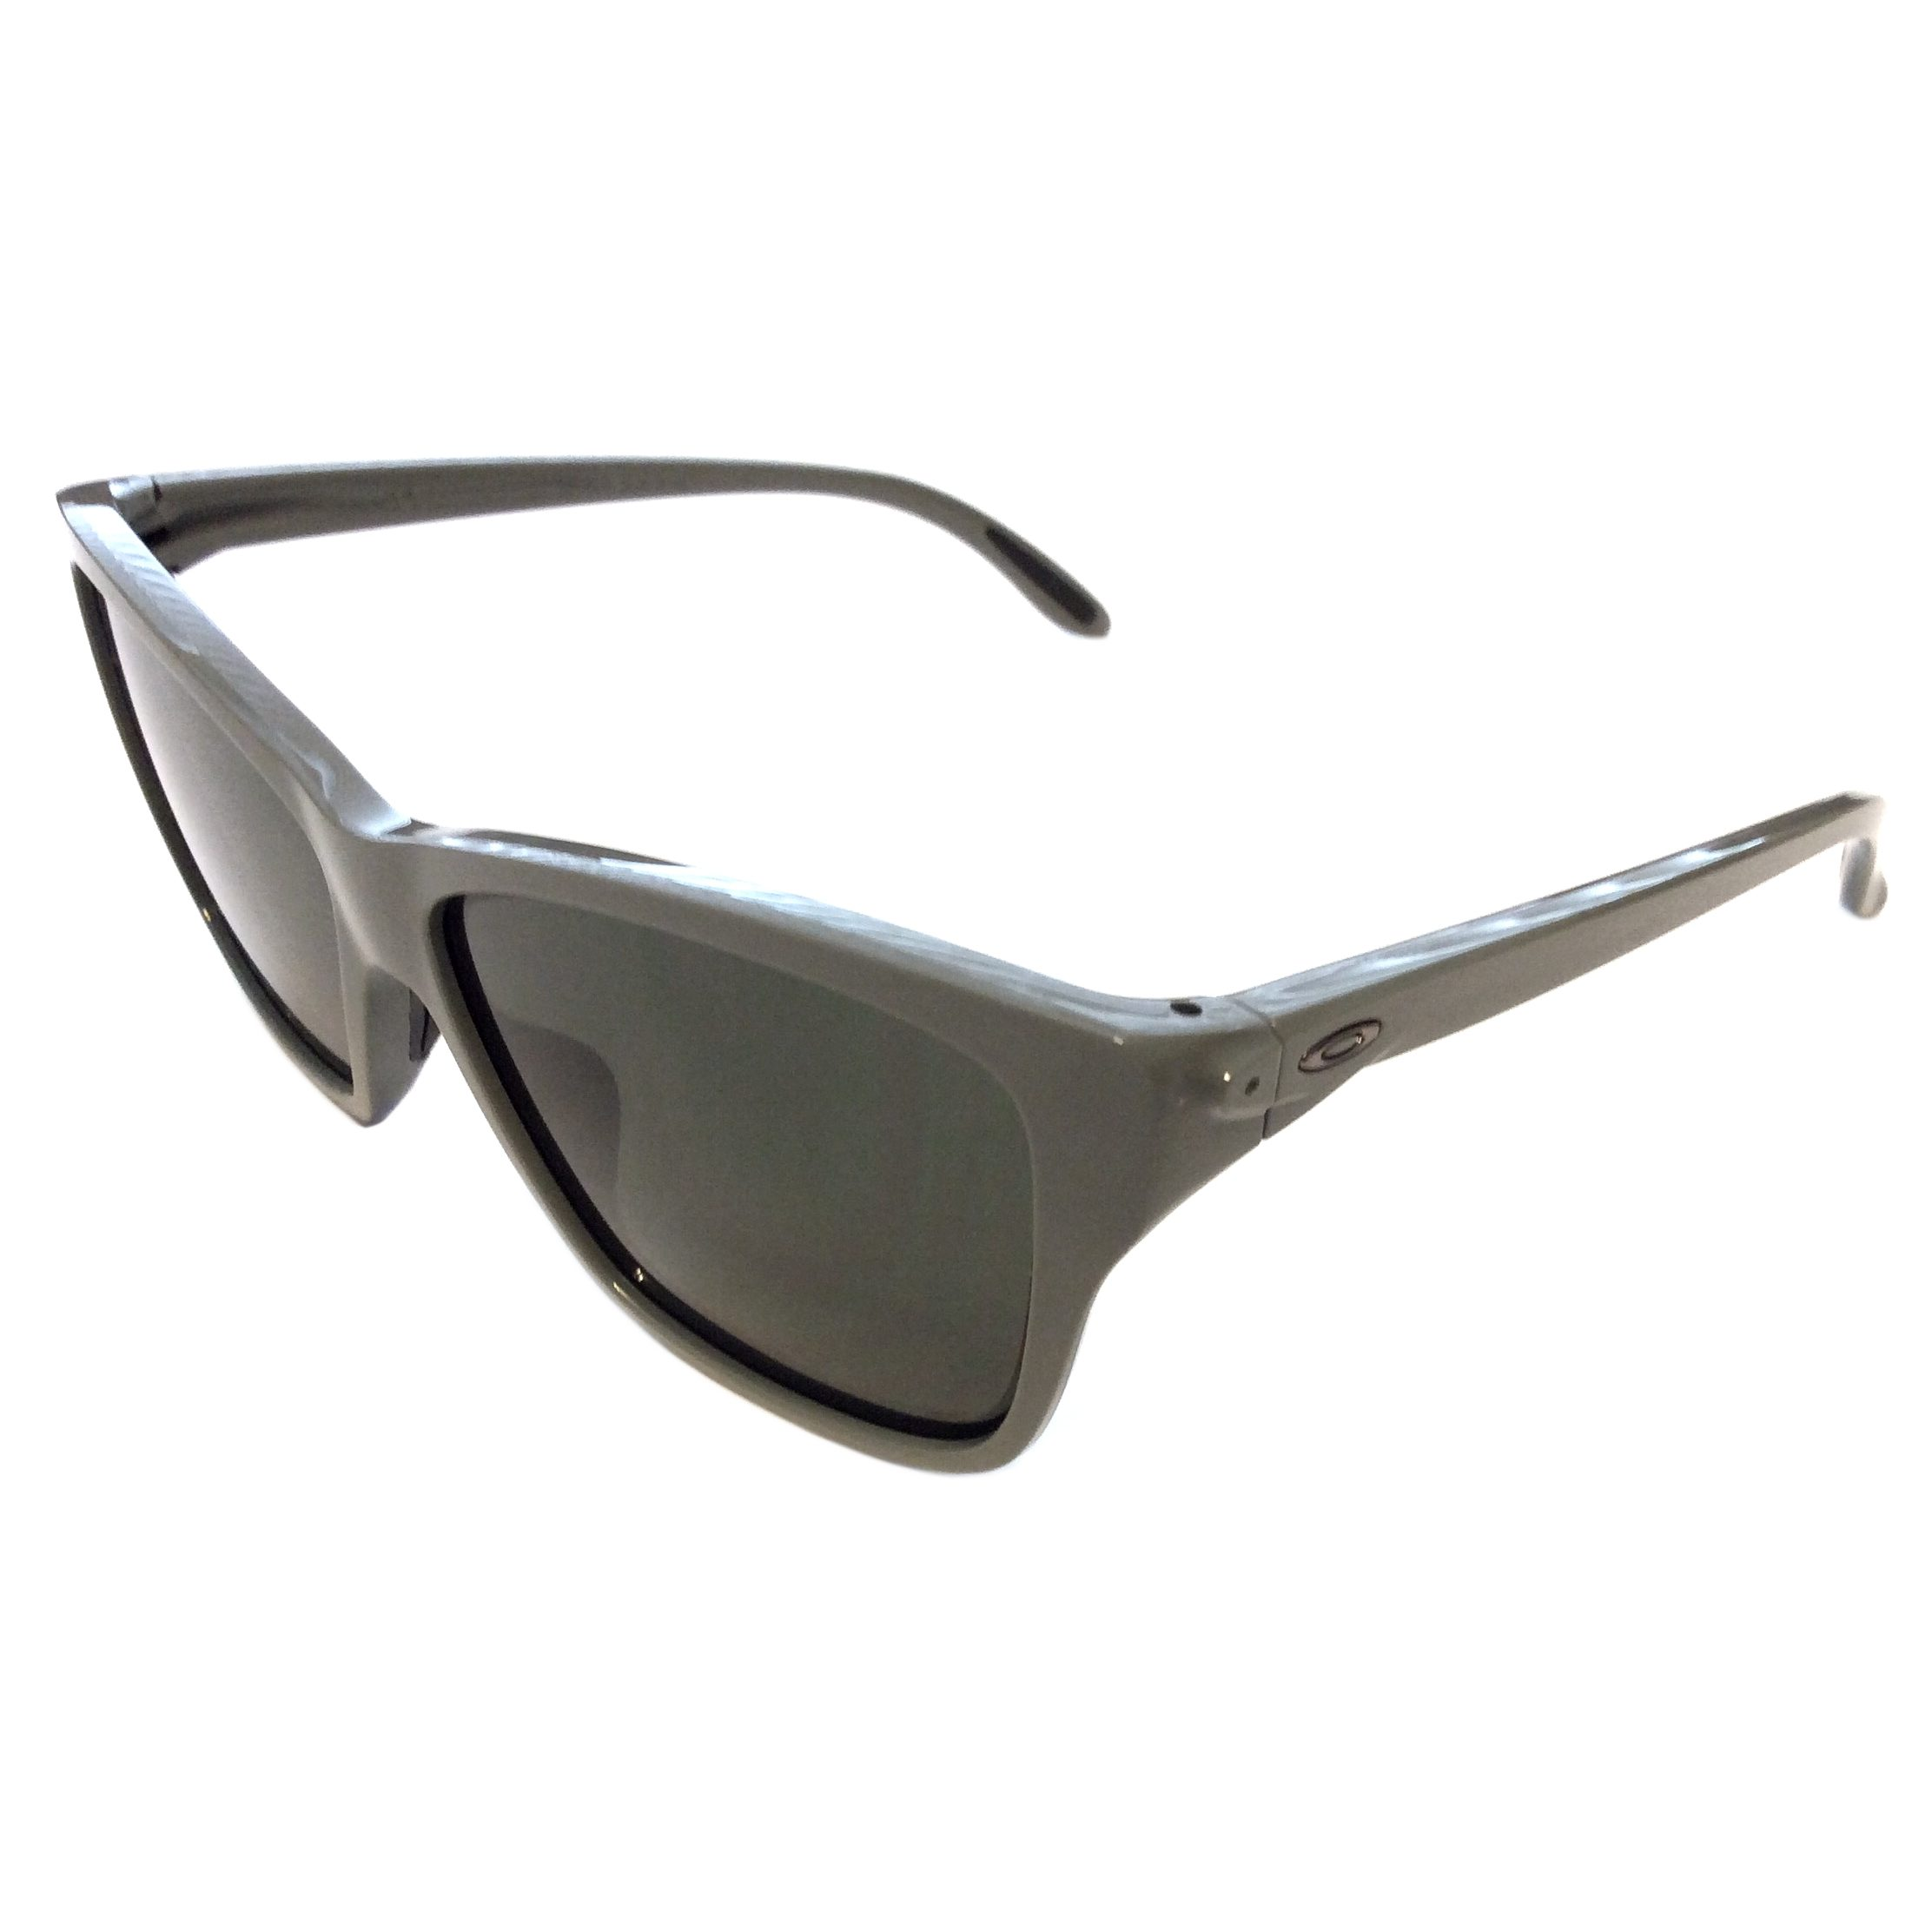 Oakley Hold On Sunglasses - Light Olive Green - Dark Grey - OO9298-05